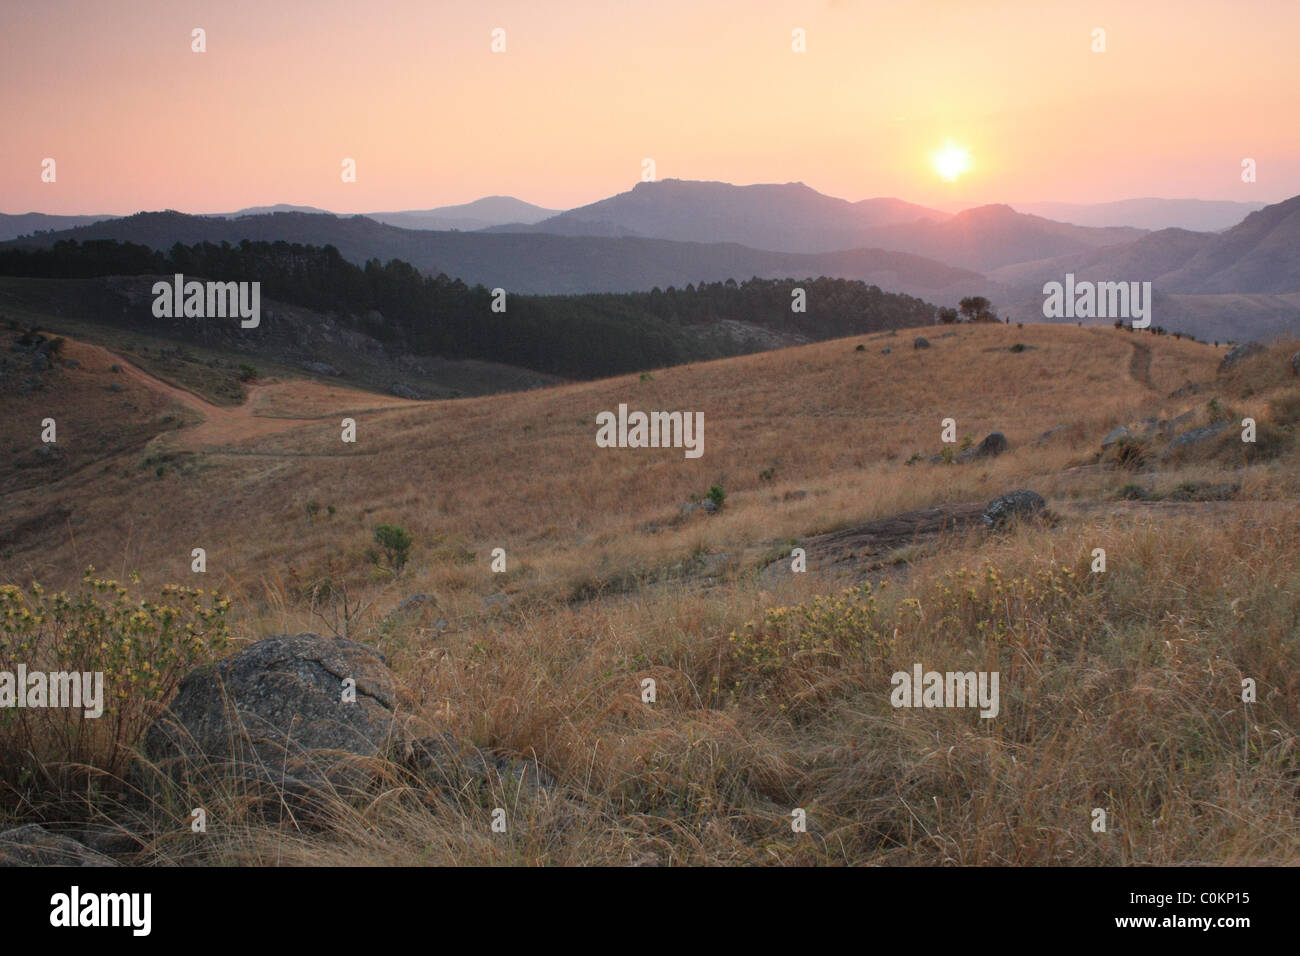 Sunset in the Mliliwane Hills, Swaziland - Stock Image